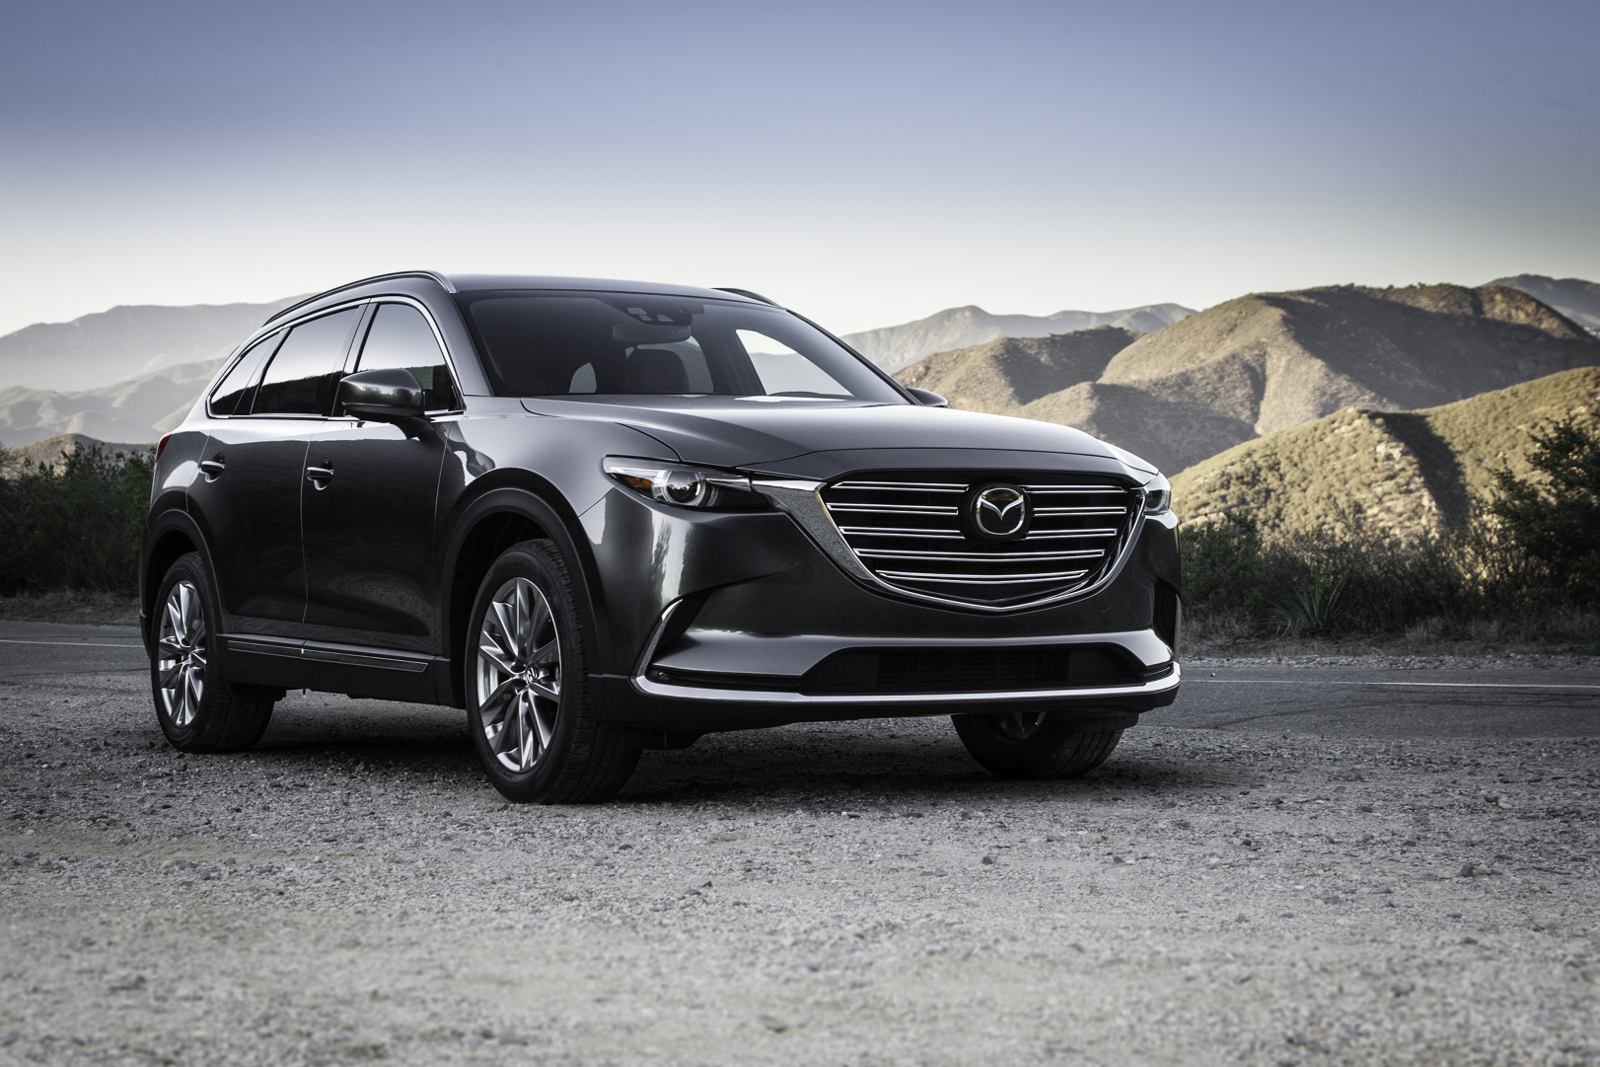 mazda-cx-9-2017-official-photo-1